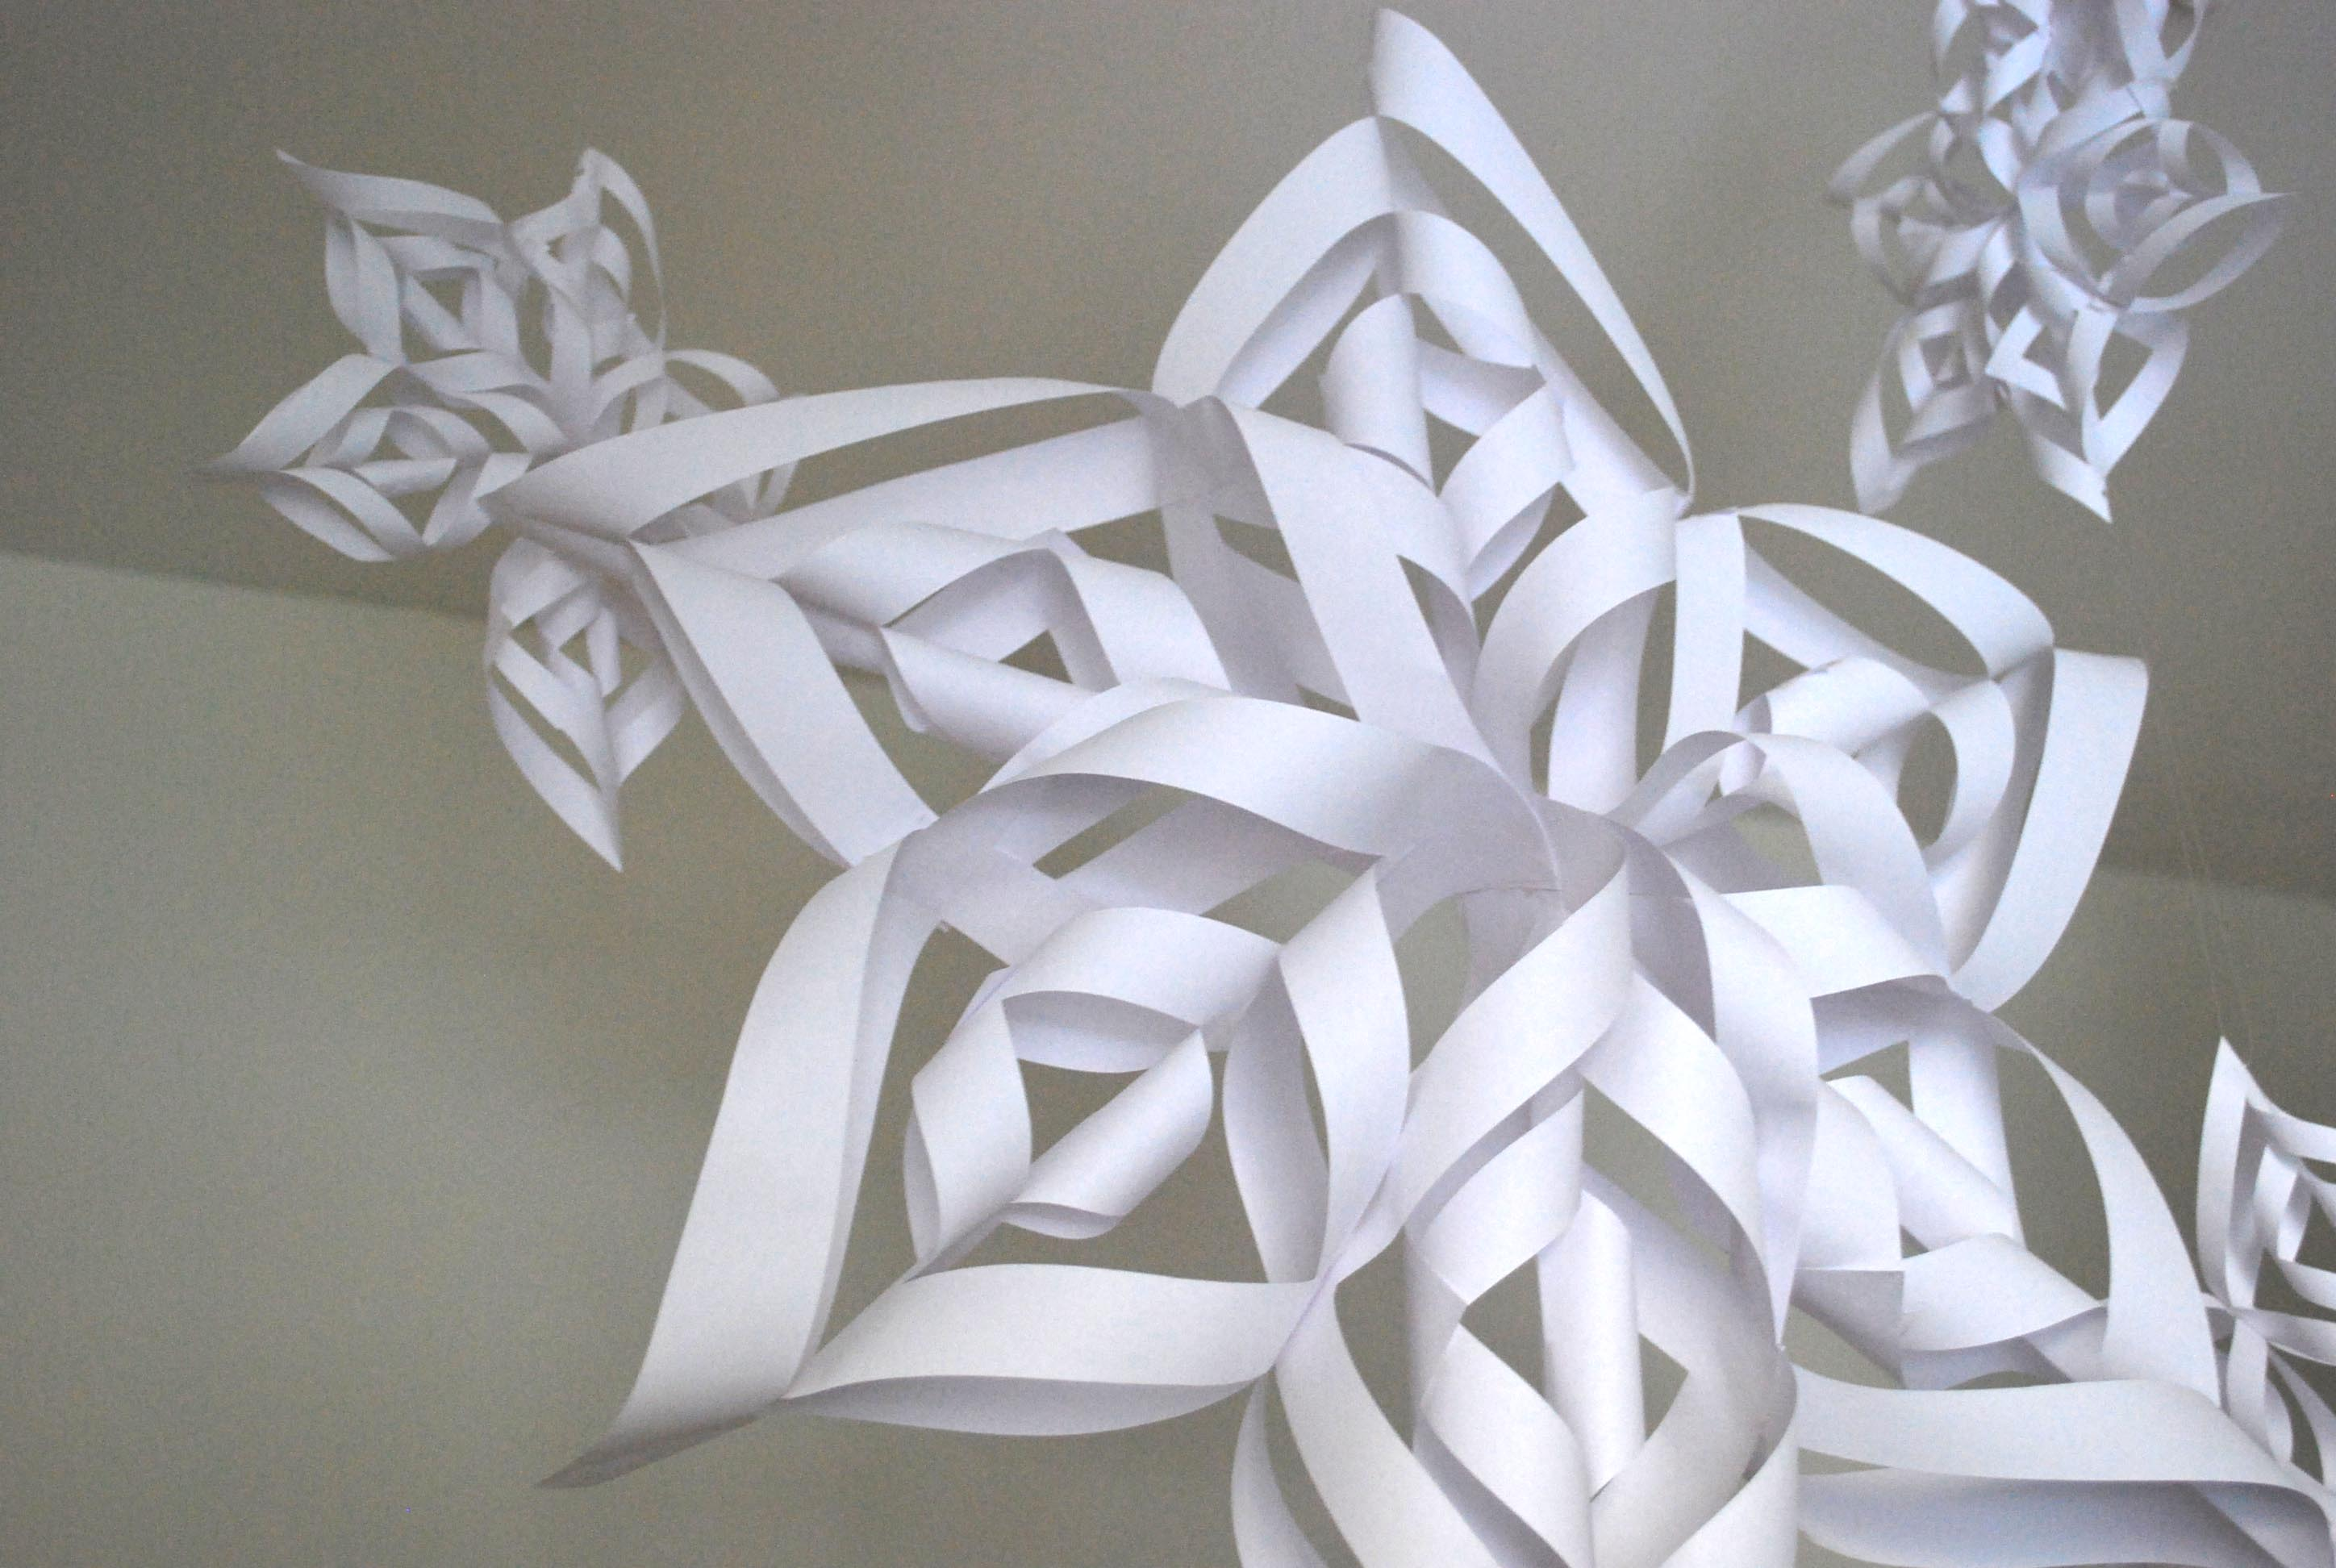 Making Stuff: 3D Paper Snowflakes